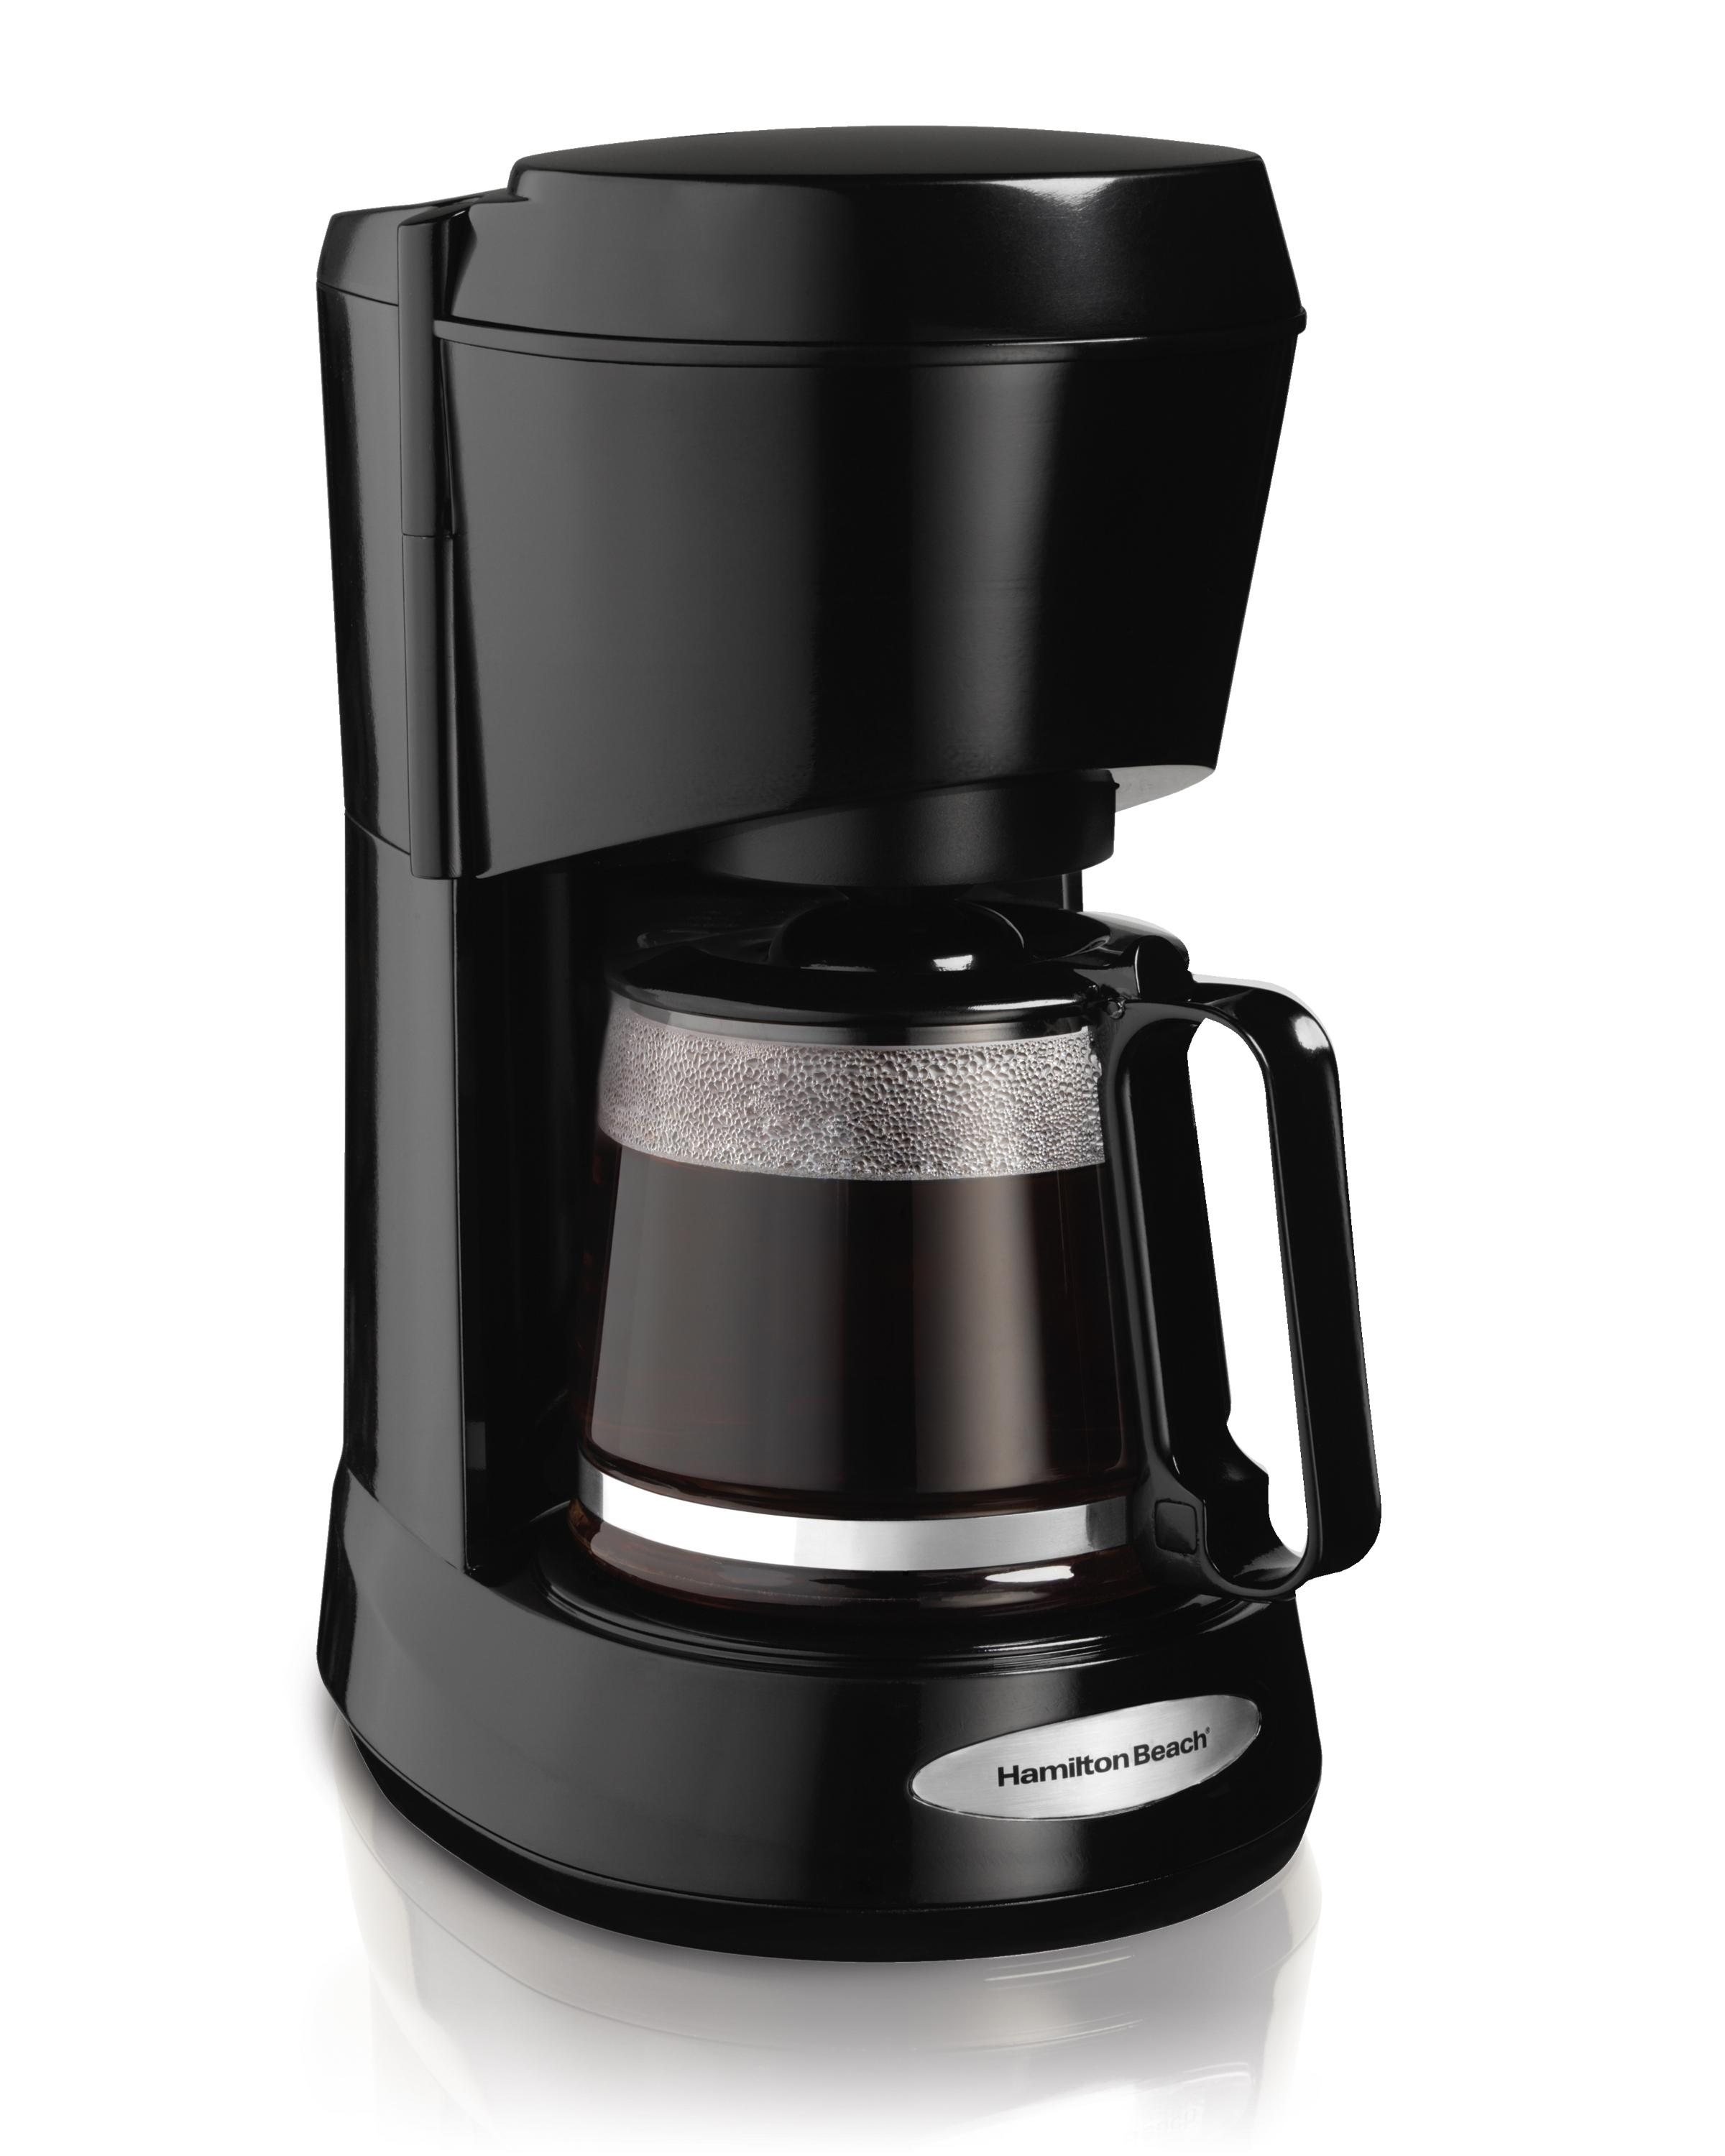 Hamilton Beach 5 Cup Filter Coffee Maker Image